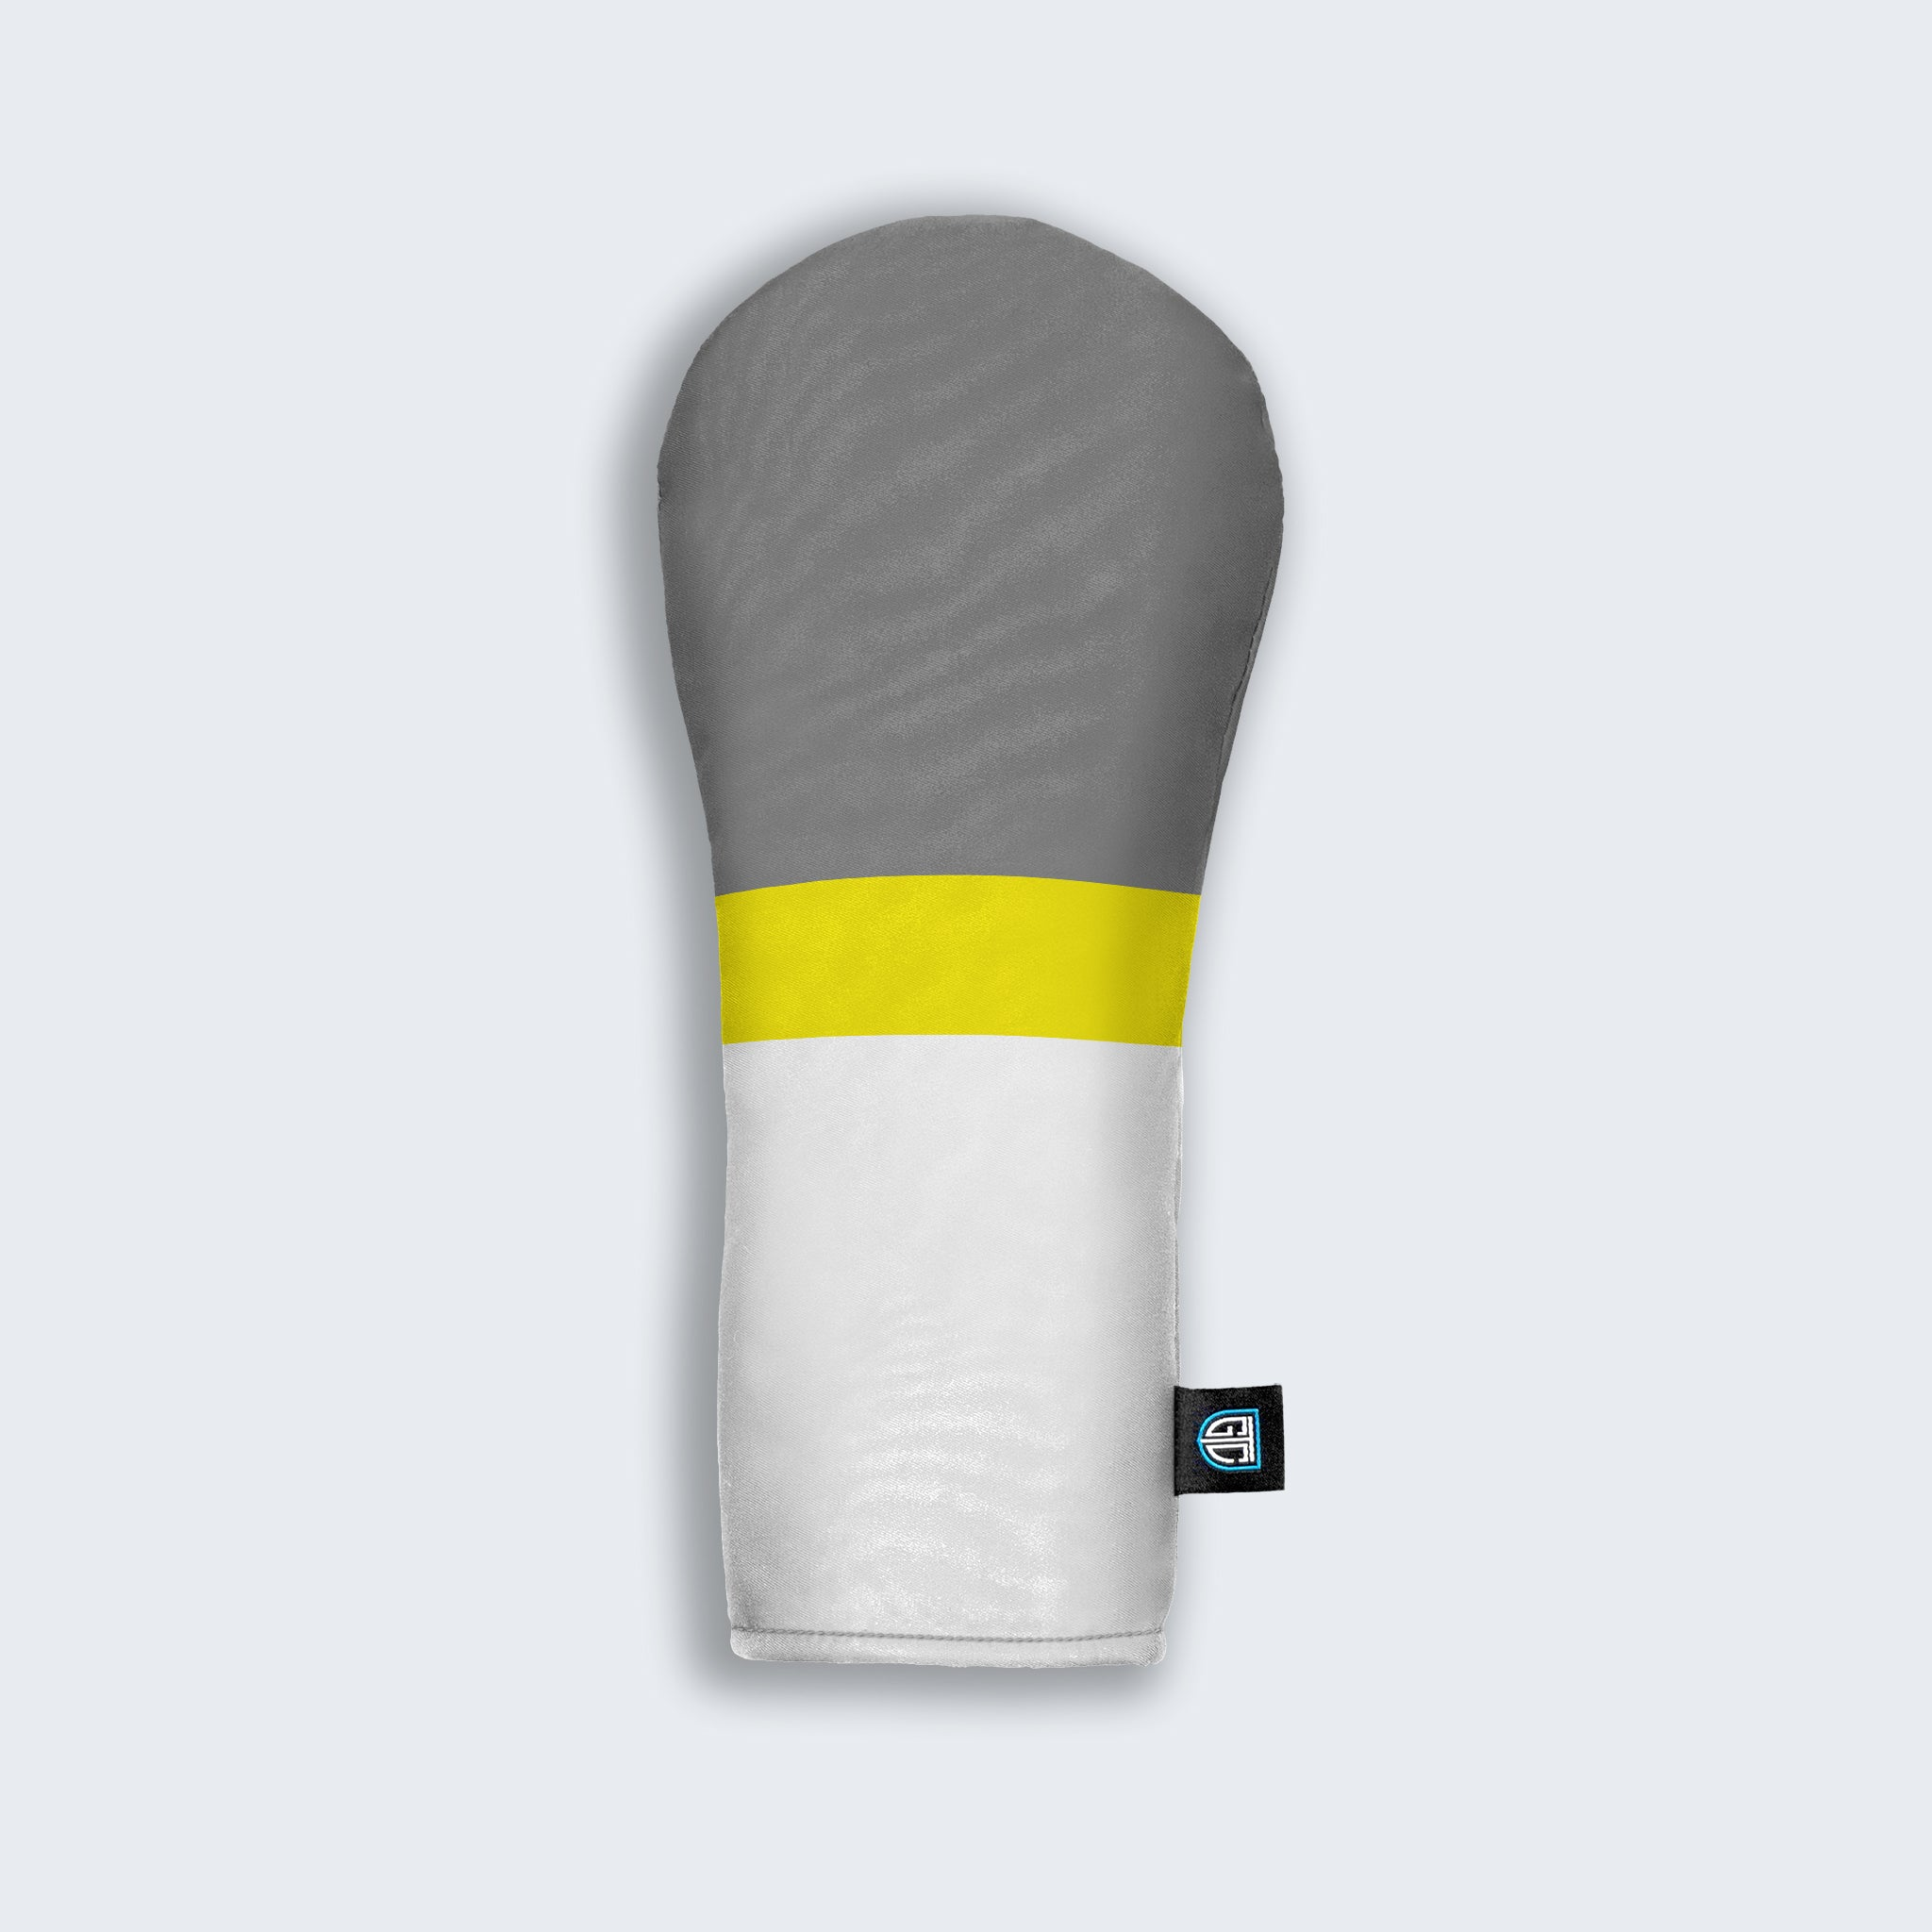 Grey/Yellow/White Head Covers - personalised golf clothing, golf teamwear, Head Covers, Towels & accessories online